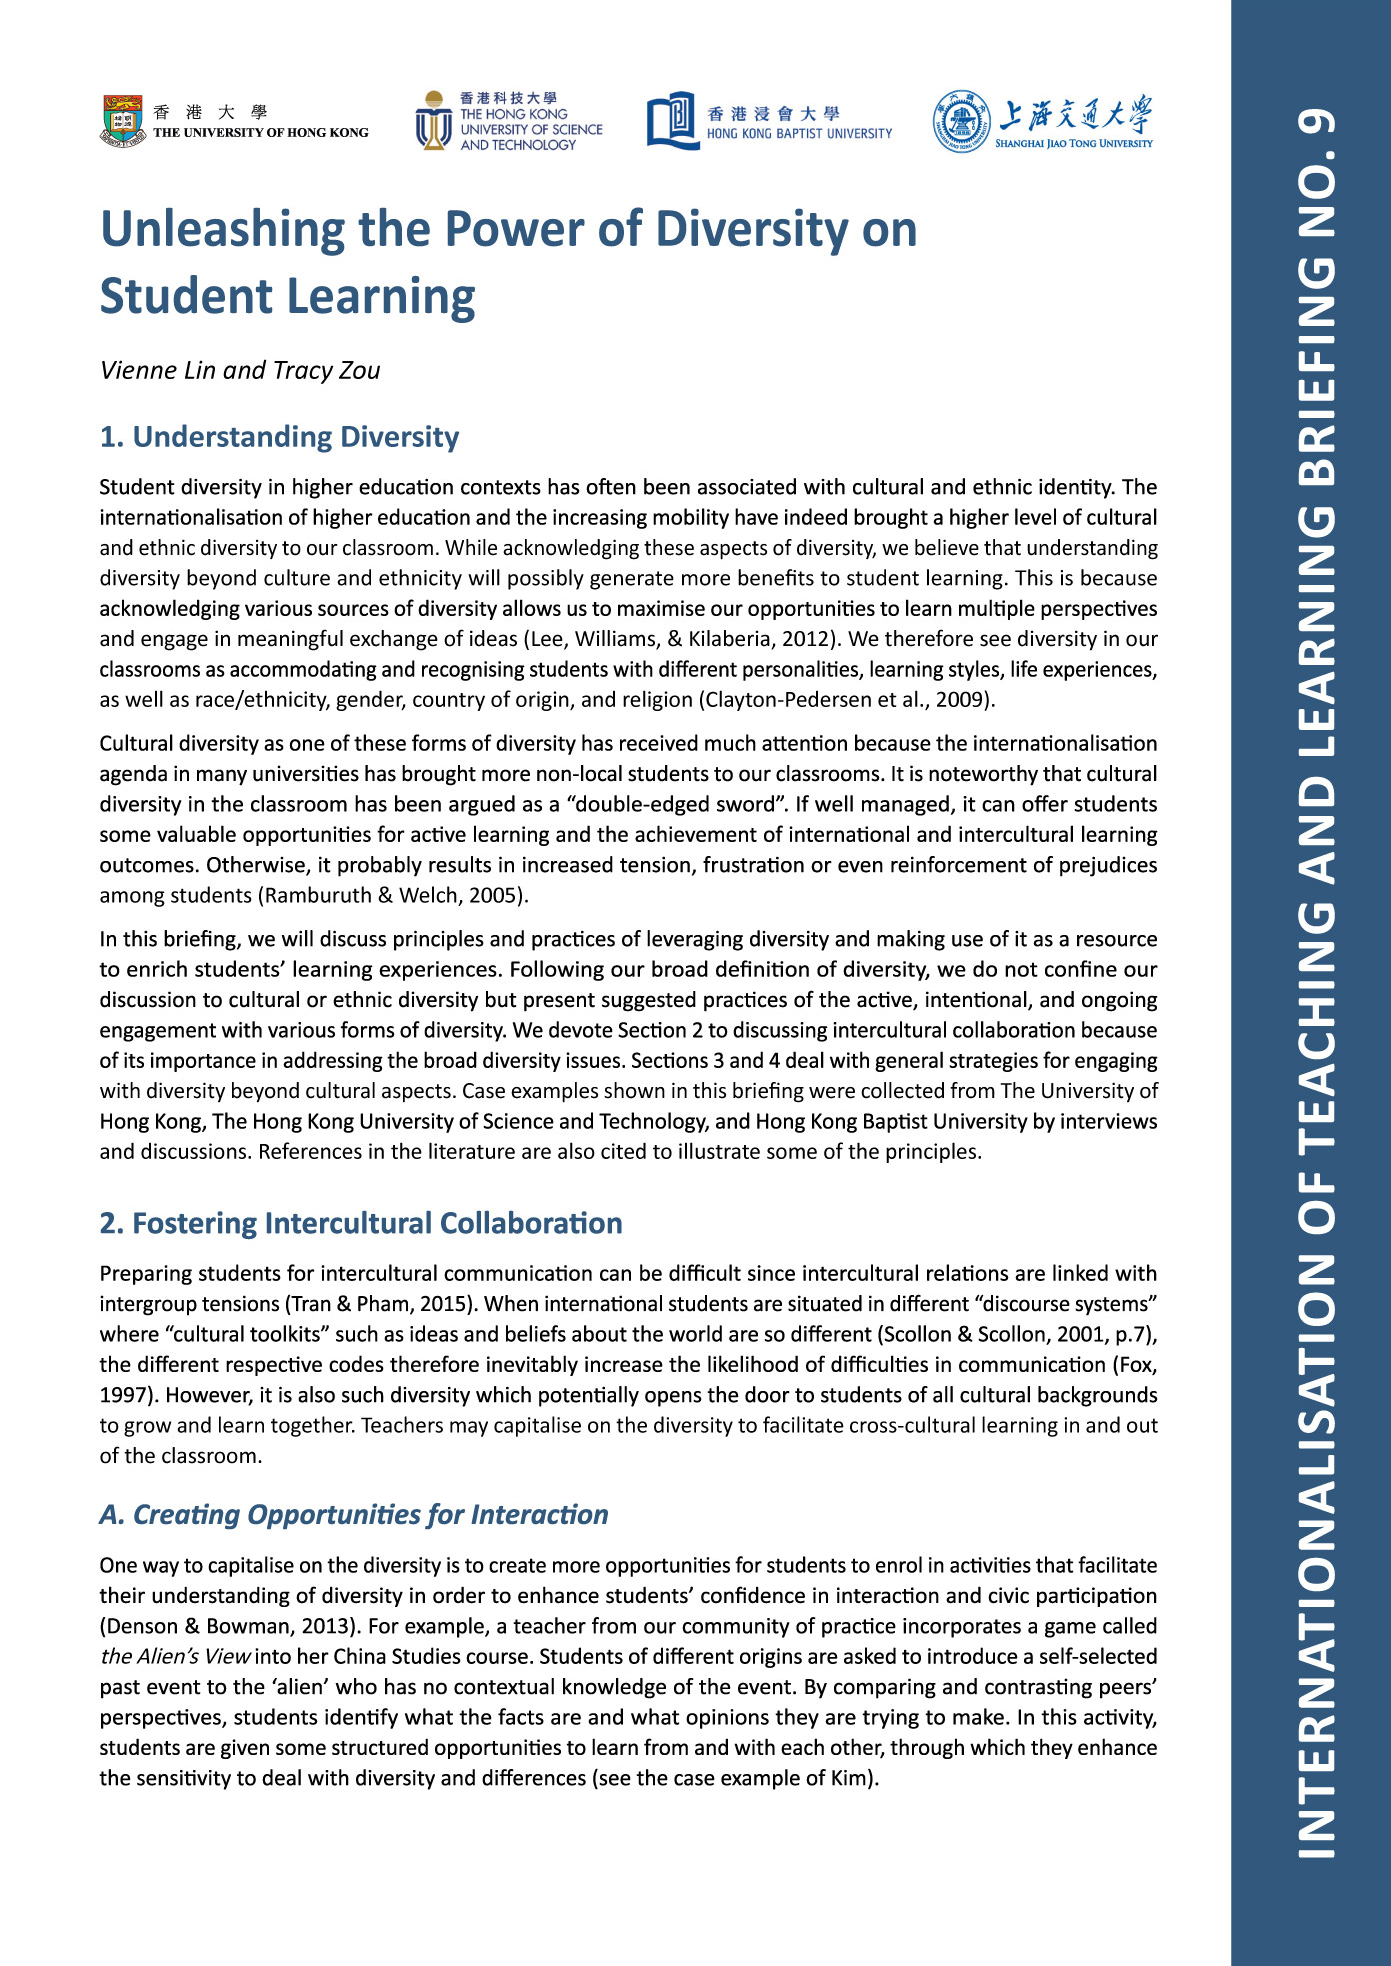 9. Unleashing the Power of Diversity on Student Learning